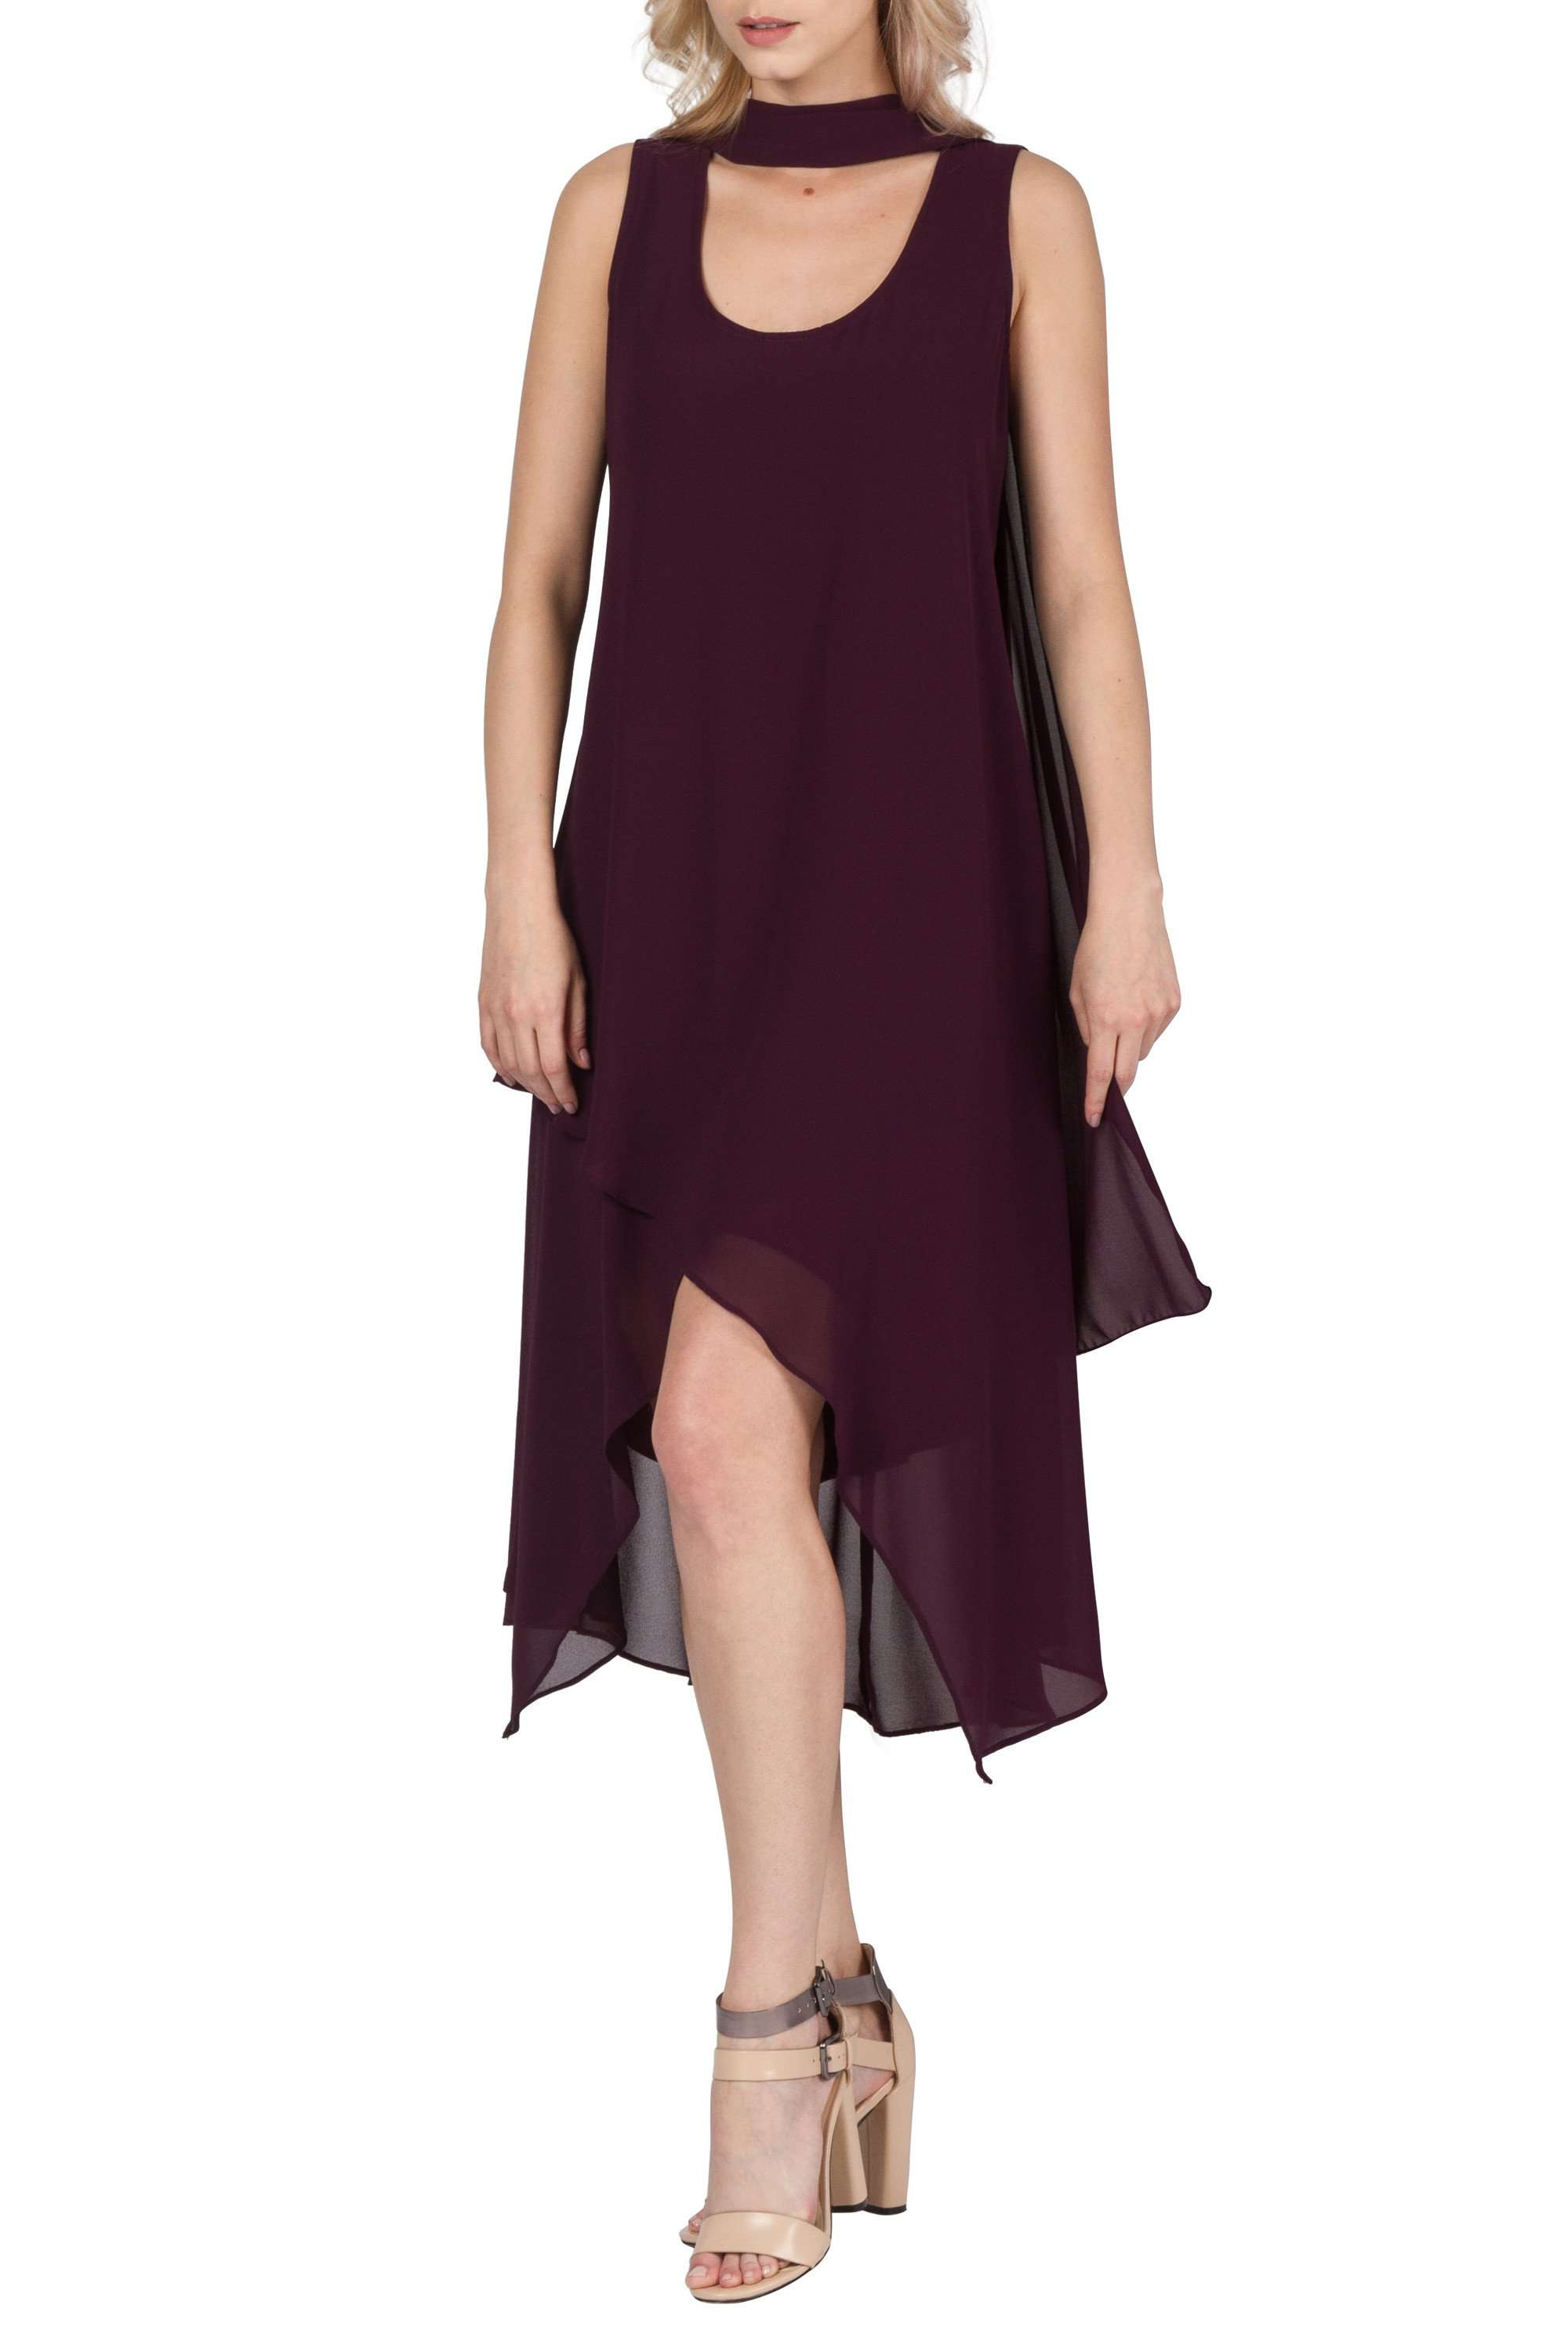 Dress Wine Plum Color in Chiffon Fabric-Elegant and Classy Design By Yvonne Marie-Made in Canada - Yvonne Marie